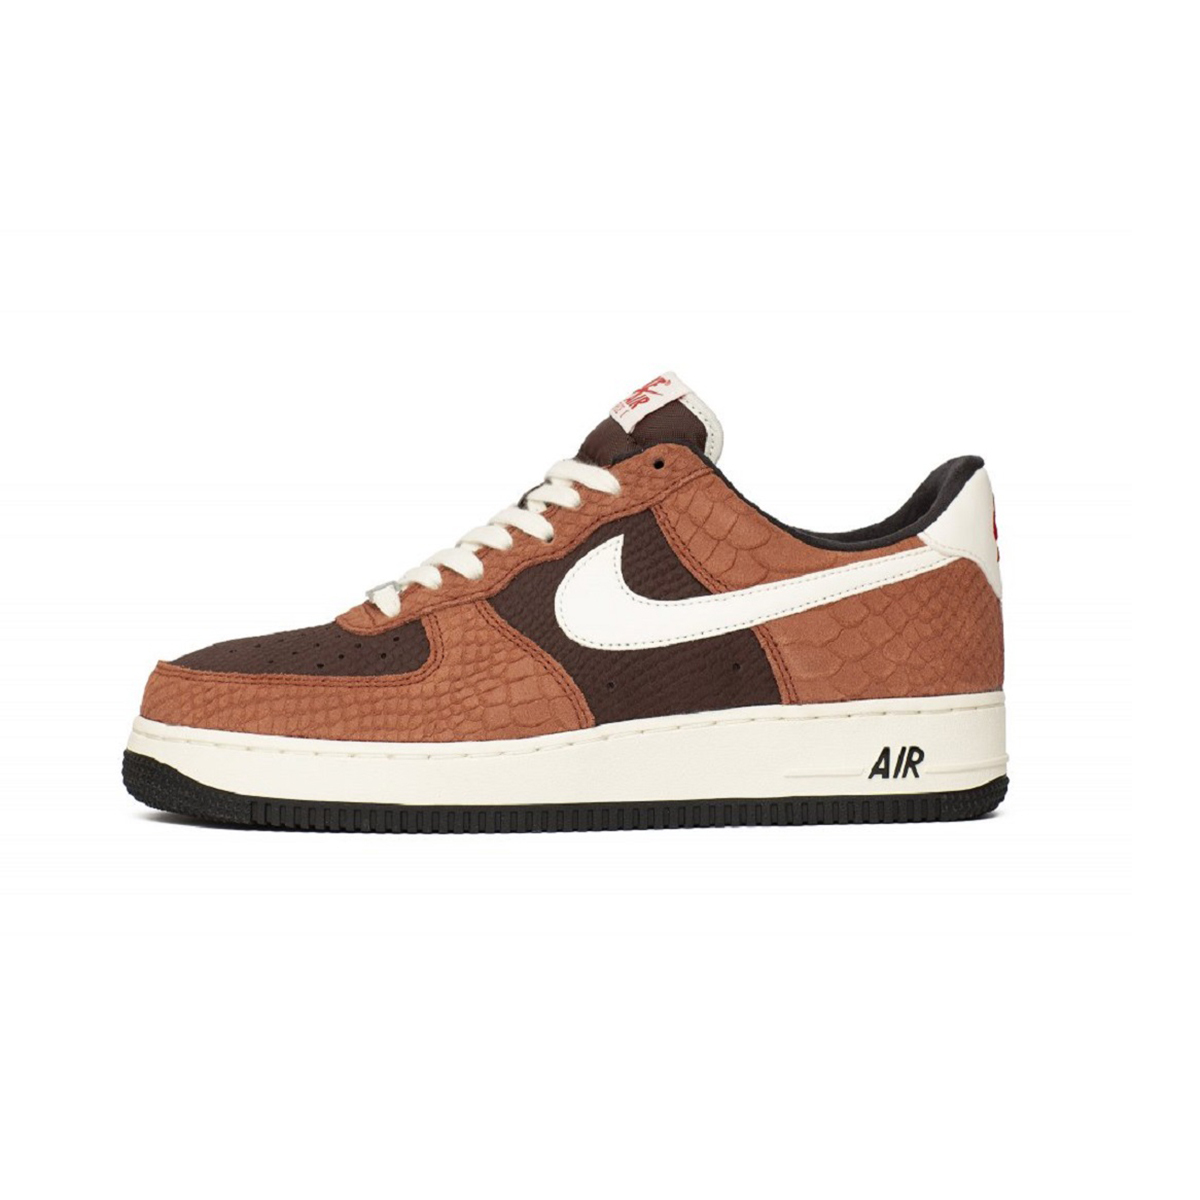 discount shop buy sale look out for Nike Golf Shoes: 6 listings